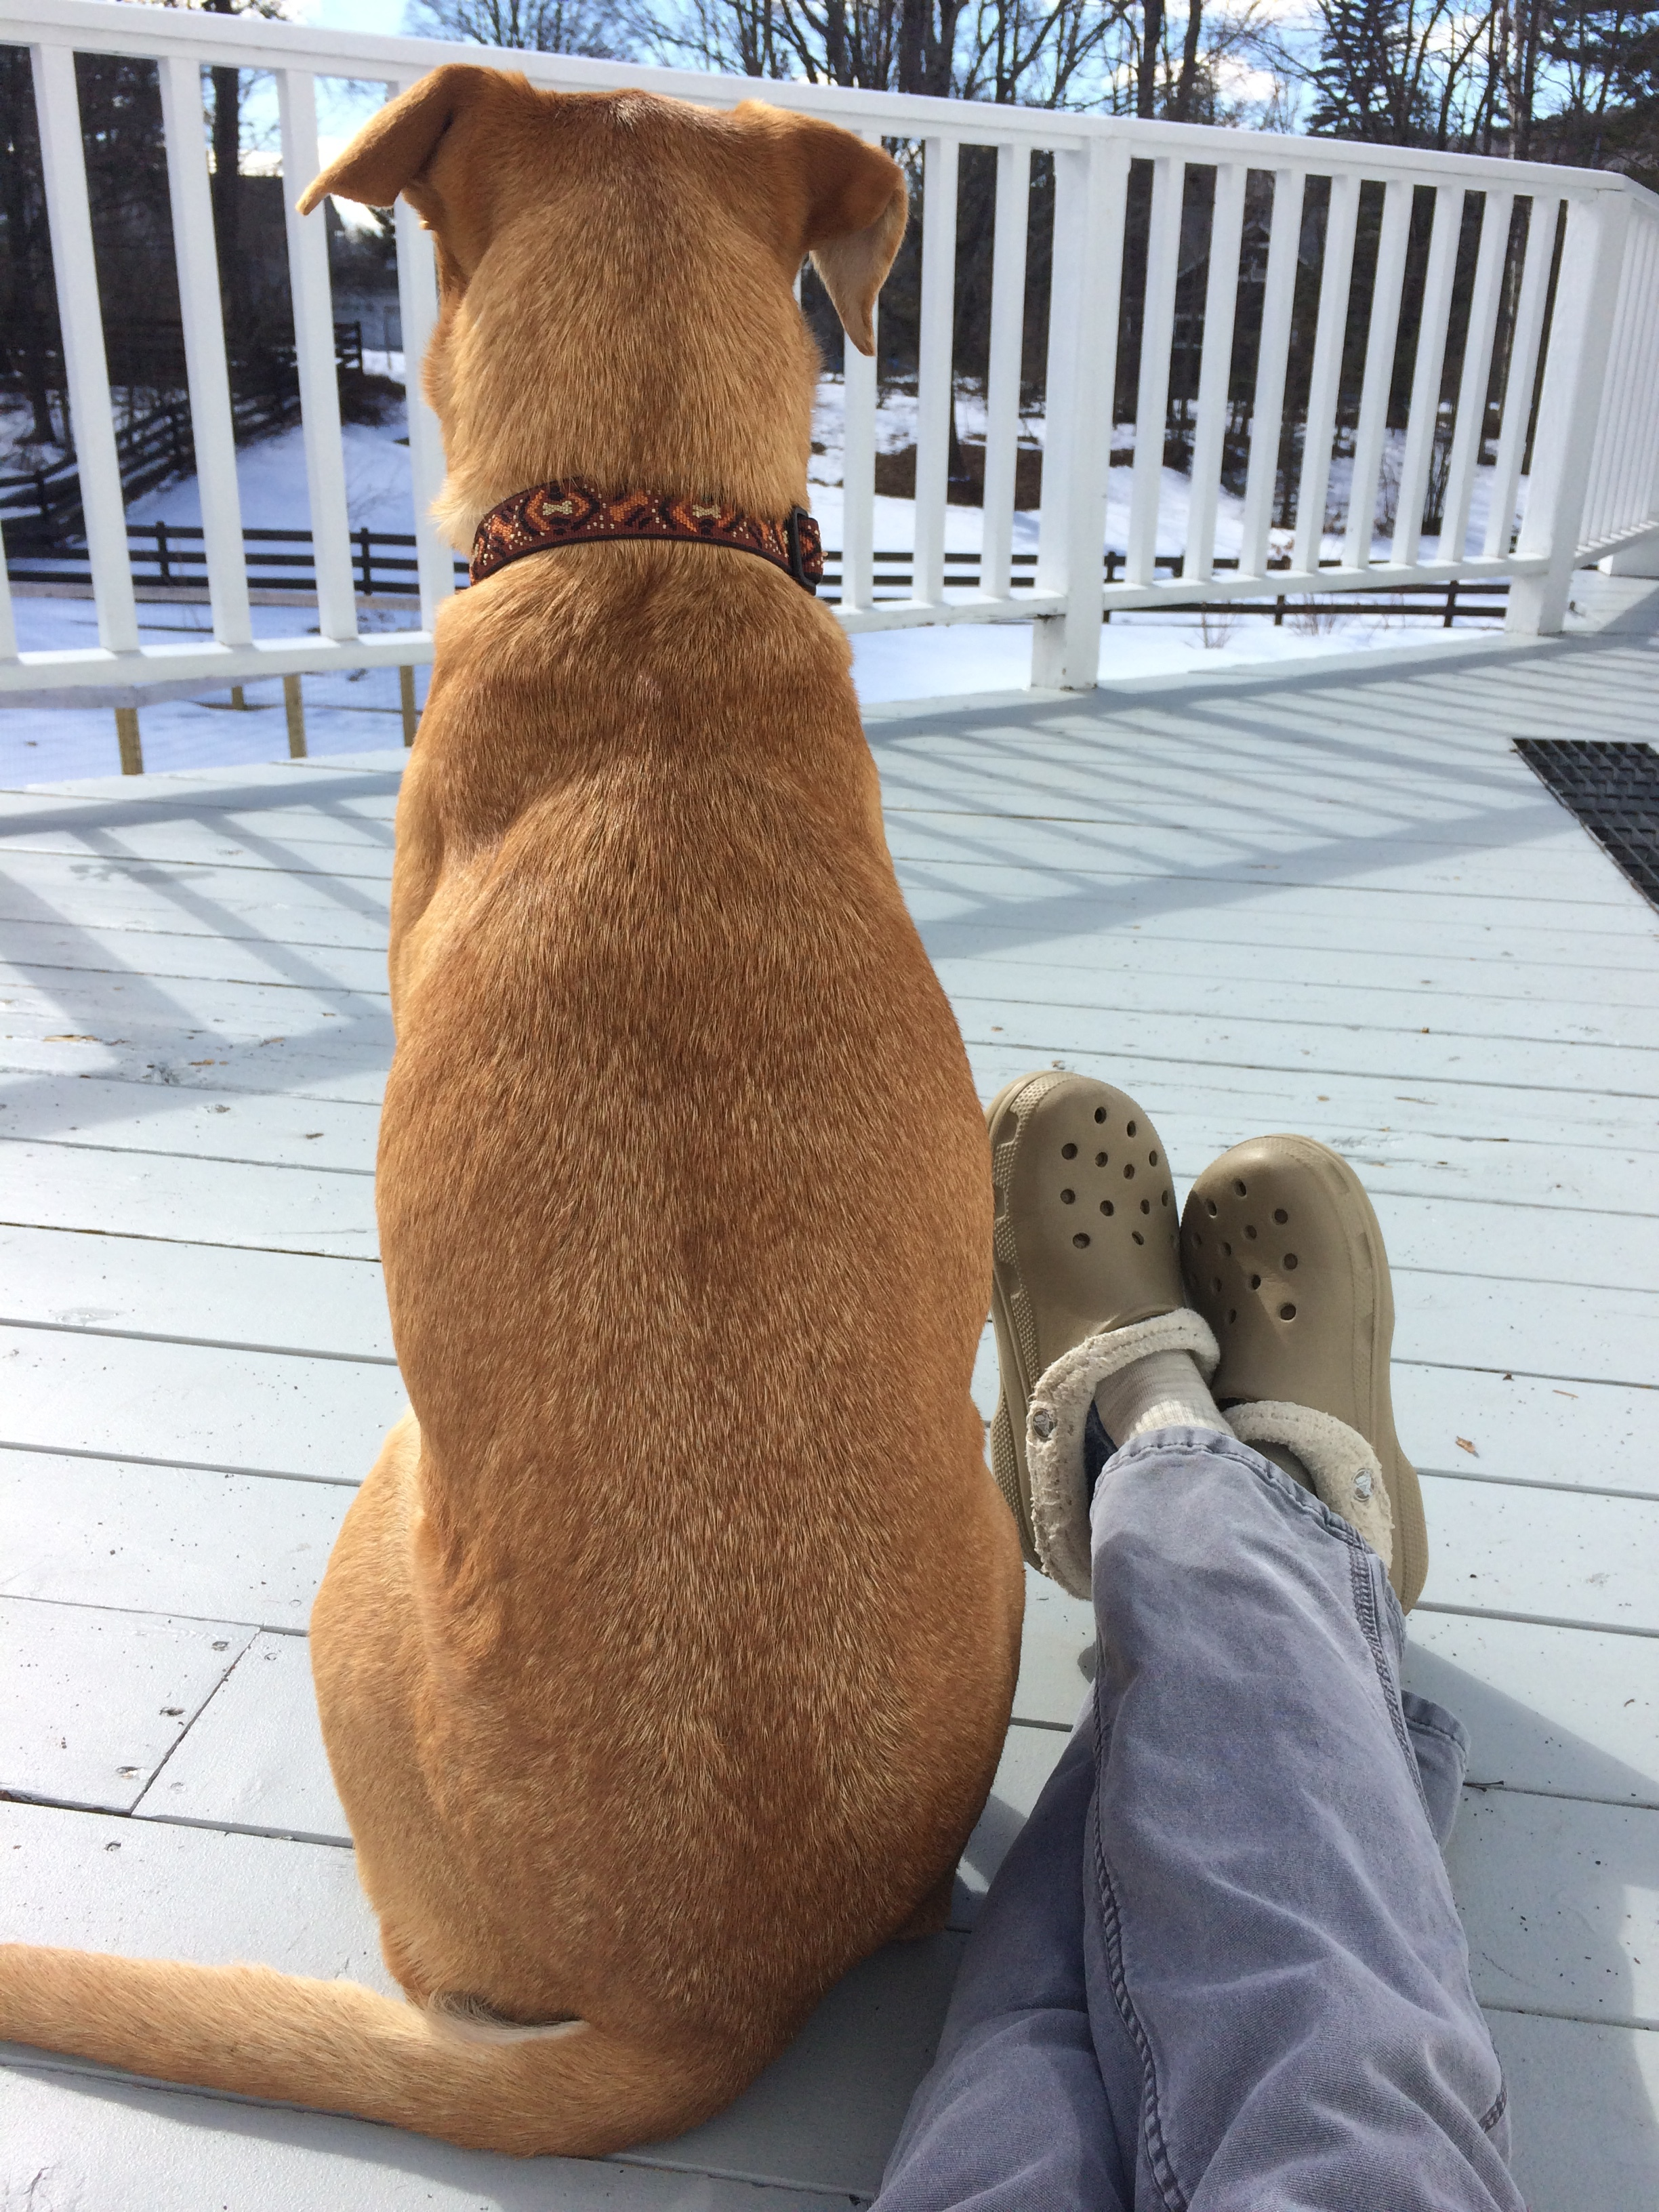 Ice baths and compression stockings are my go-tos. Walking the dog and then napping on the porch is one of my favorites too :)